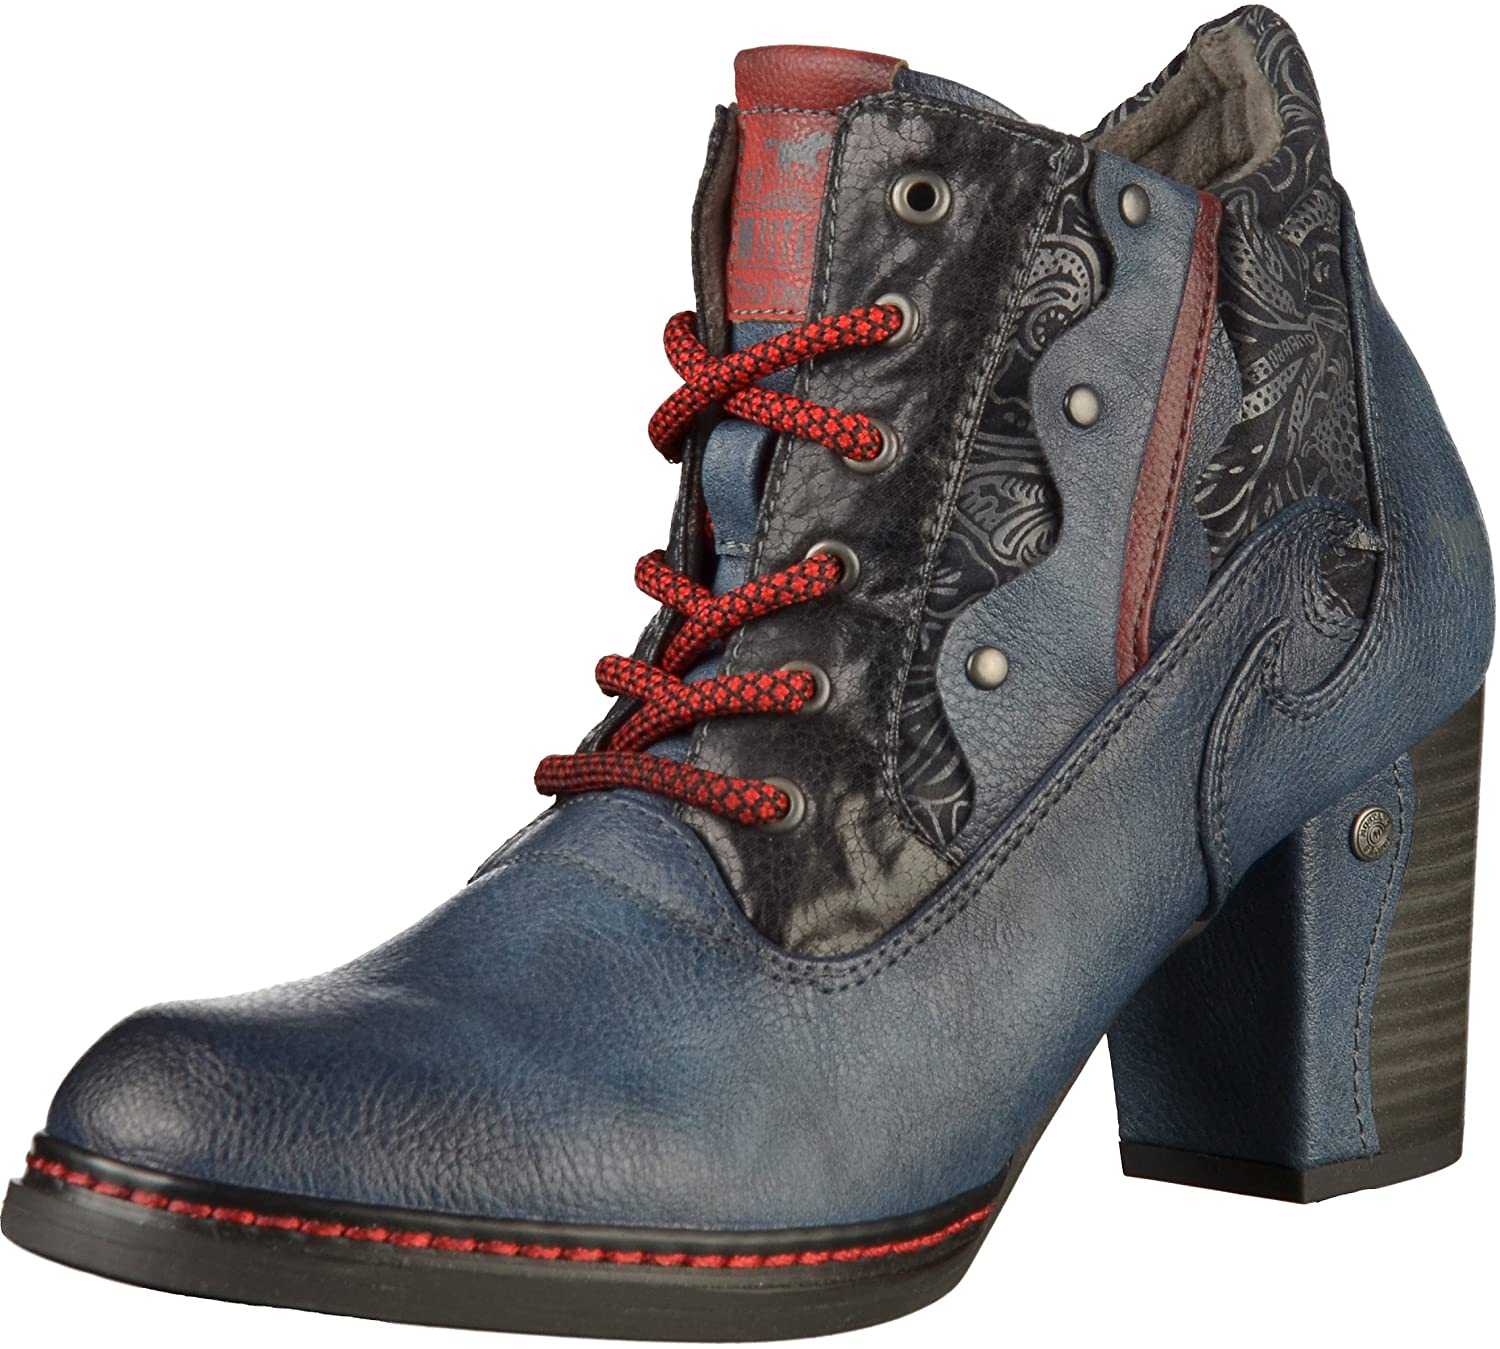 Mustang 19482 B075RYX3FR Stiefelette, Mustang Botines Femme Bleu ca02c1a - automaticcouplings.space